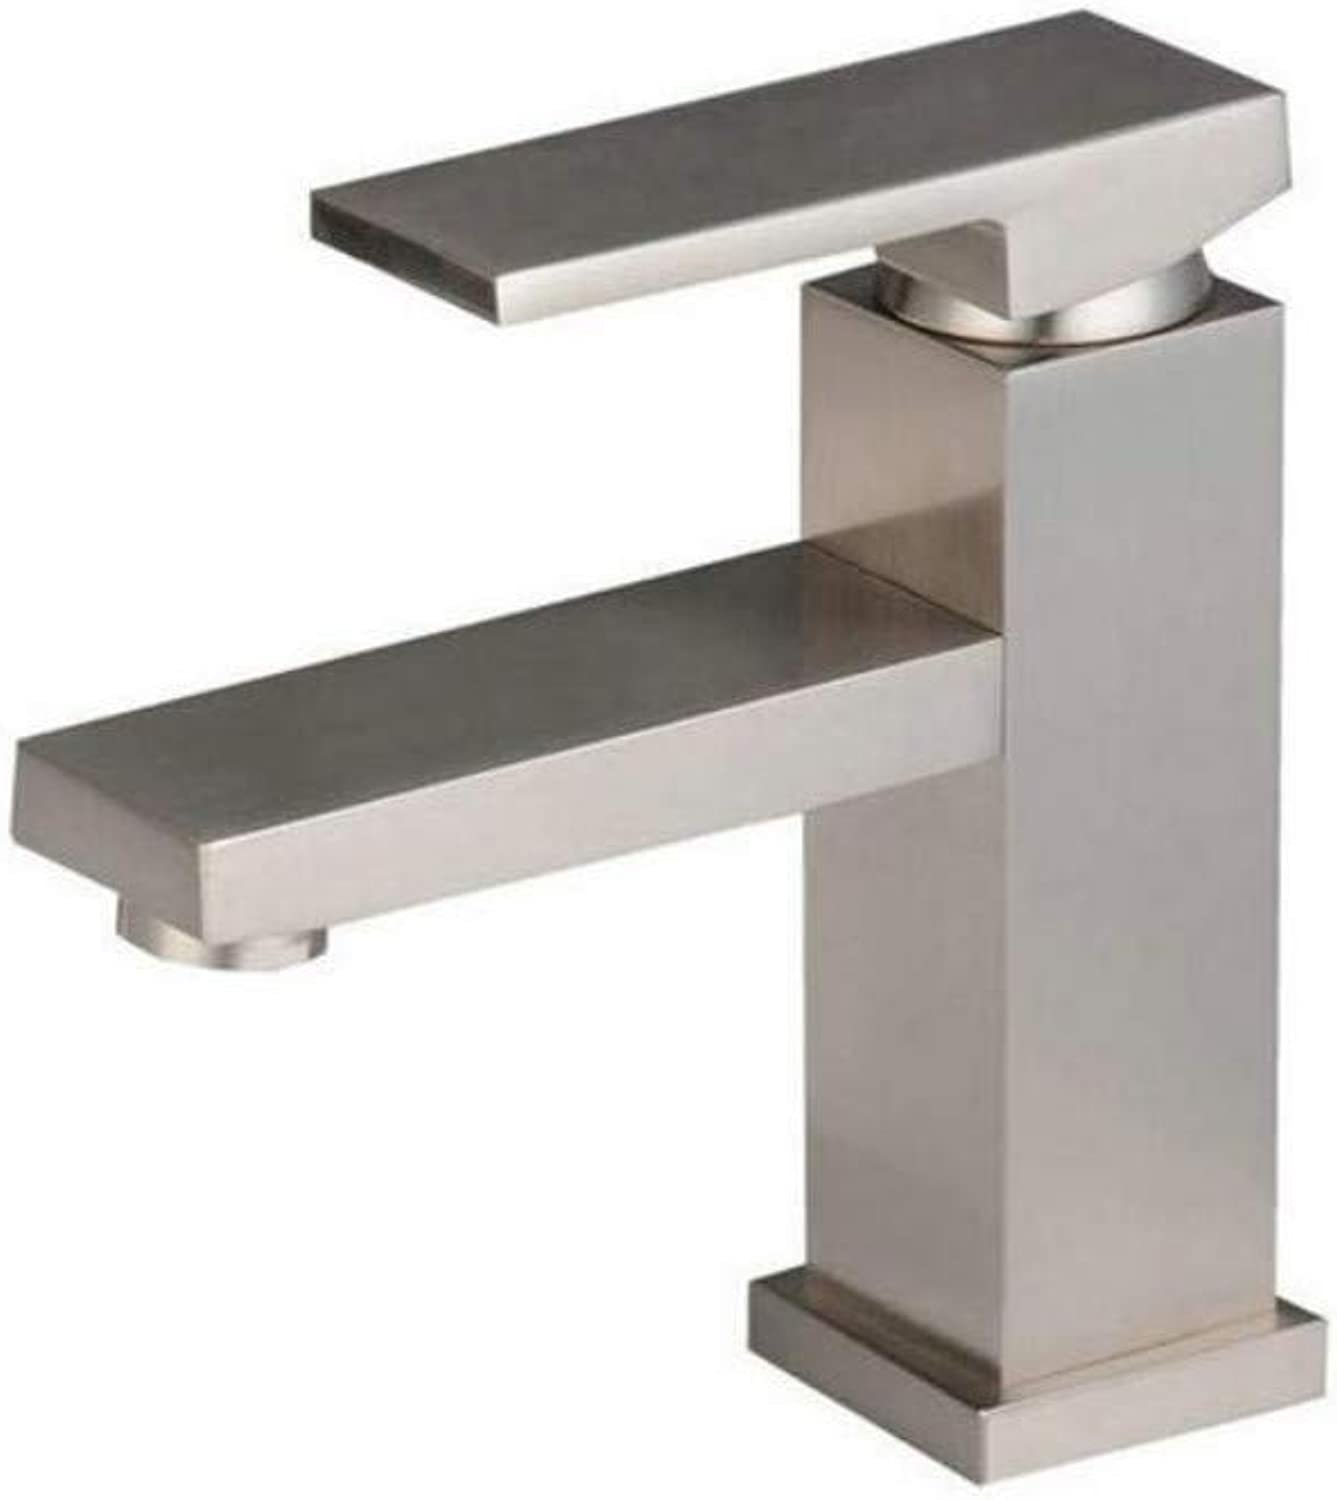 Taps Kitchen Sinkcopper Cold and Hot Water Faucet Gravity Casting Basin Mixing Faucet